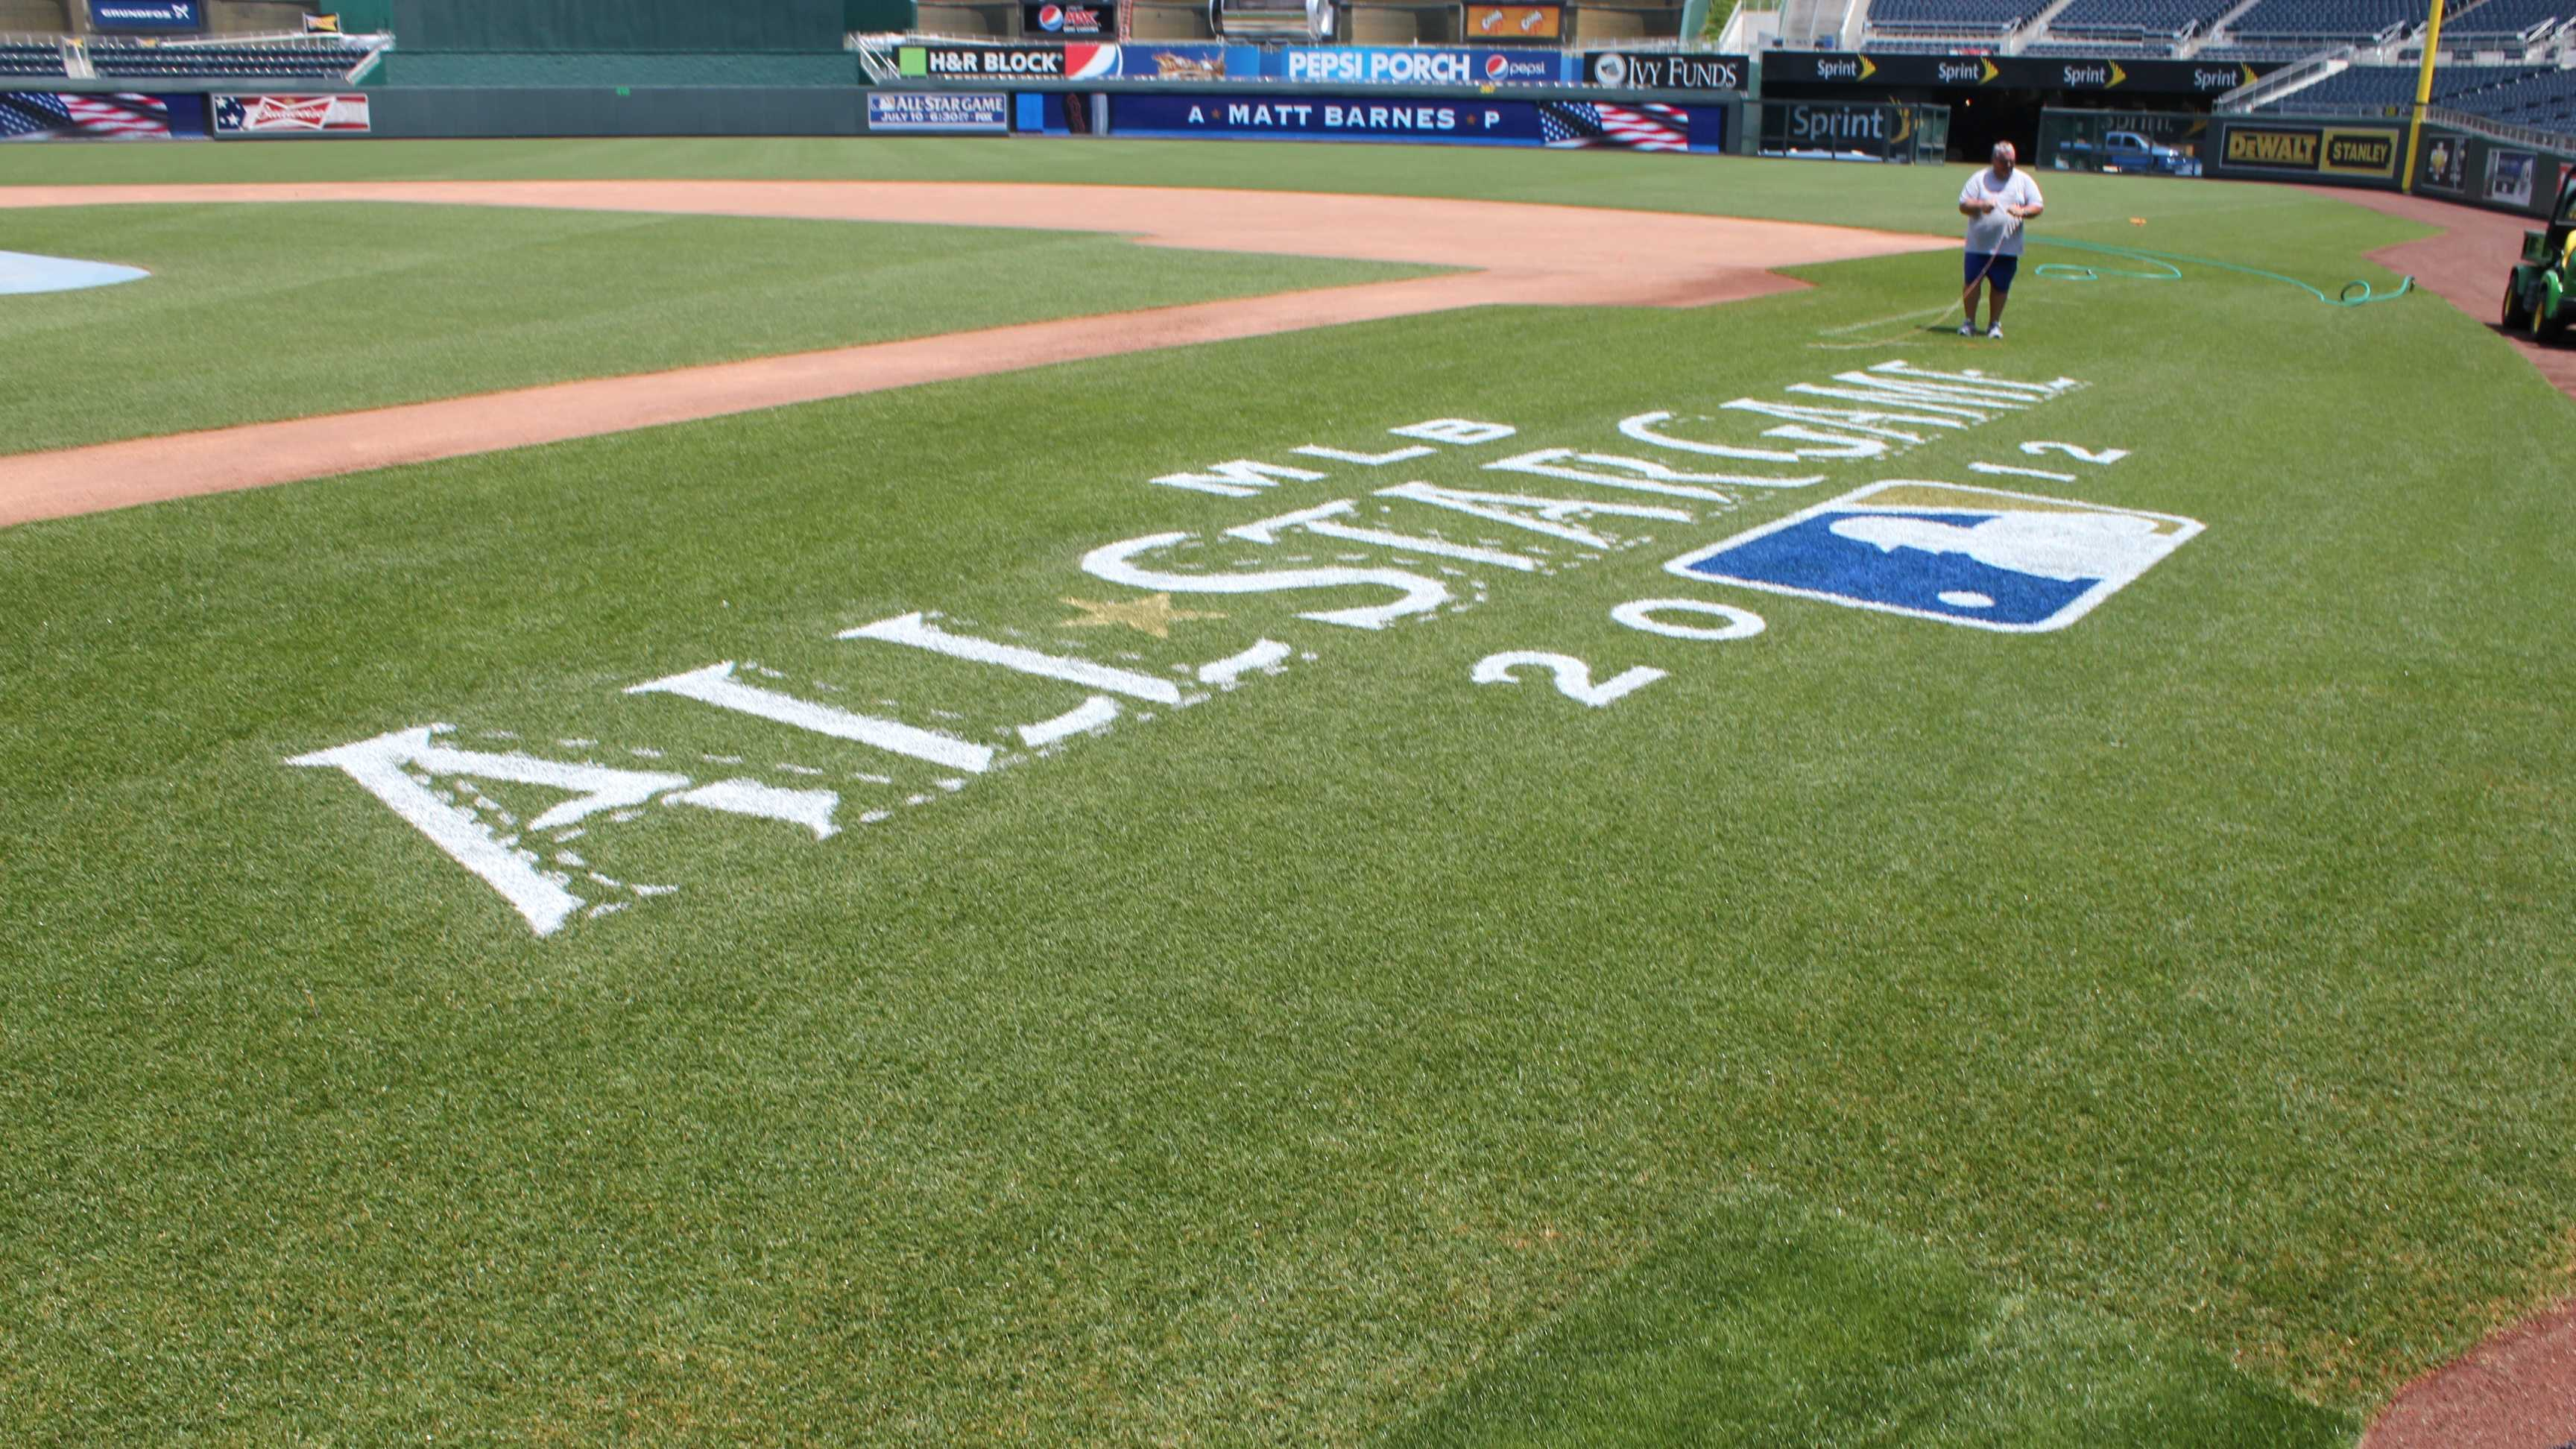 The All-Star Game logo along the first base side.